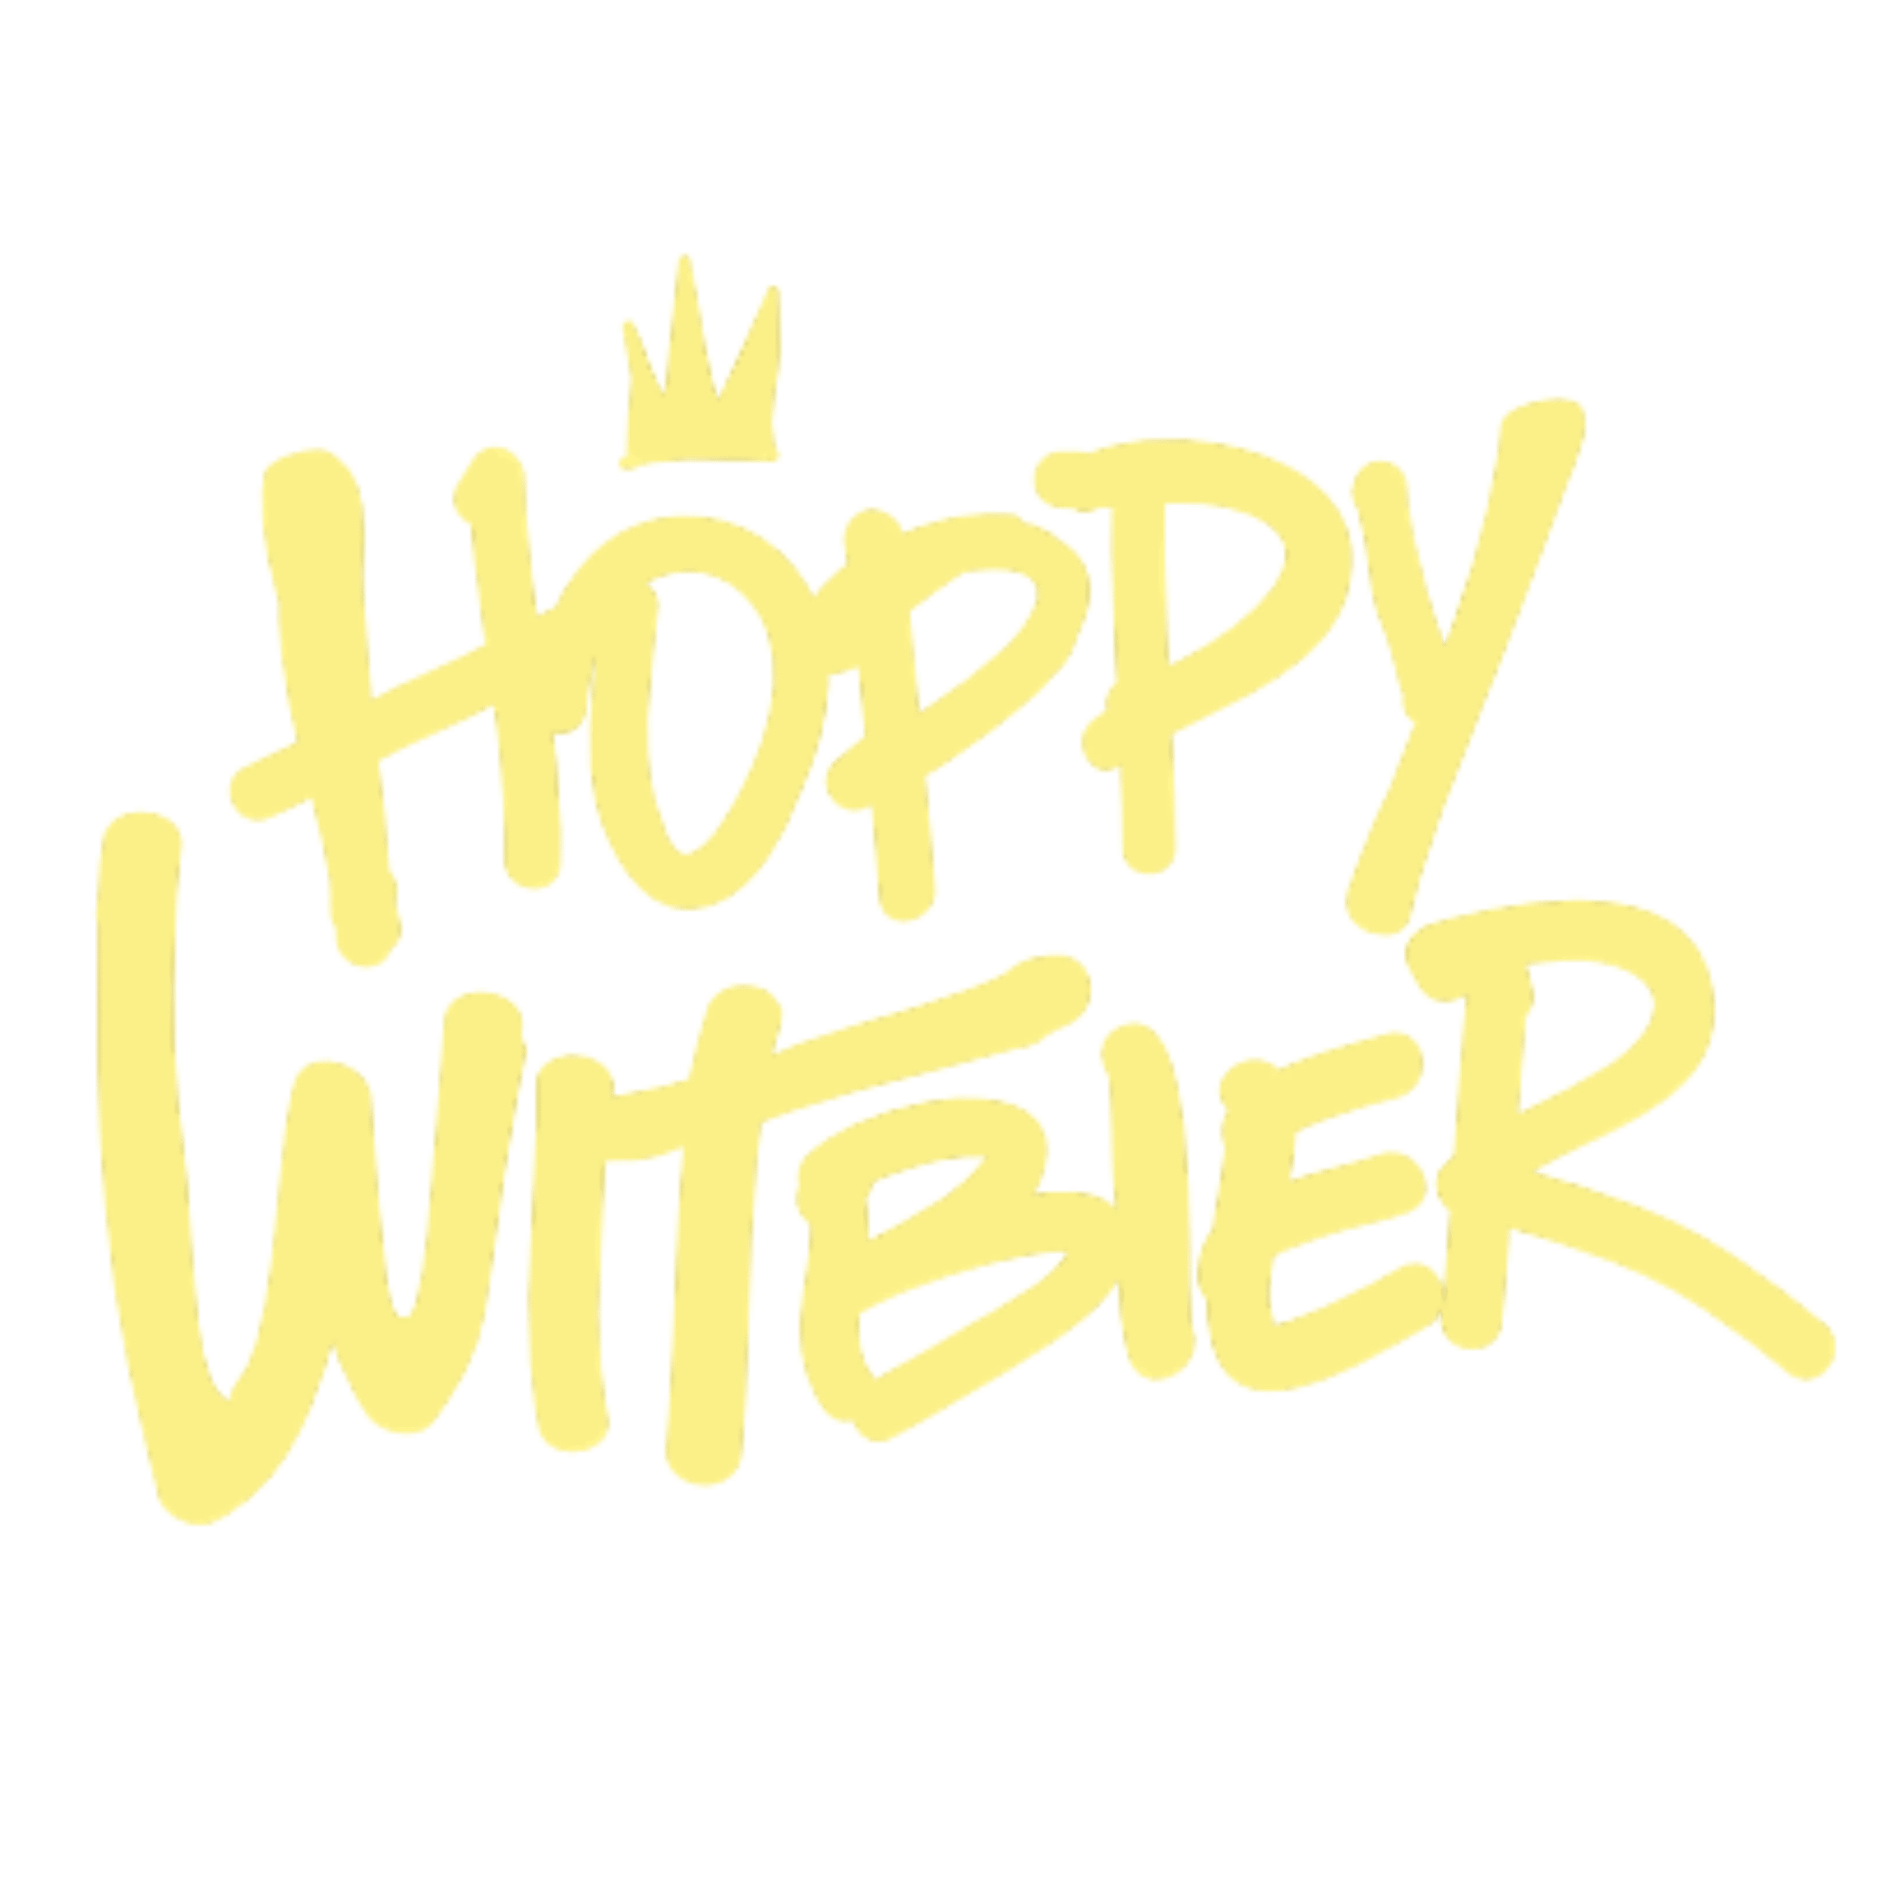 Hop For fun - Hoppy Witbier